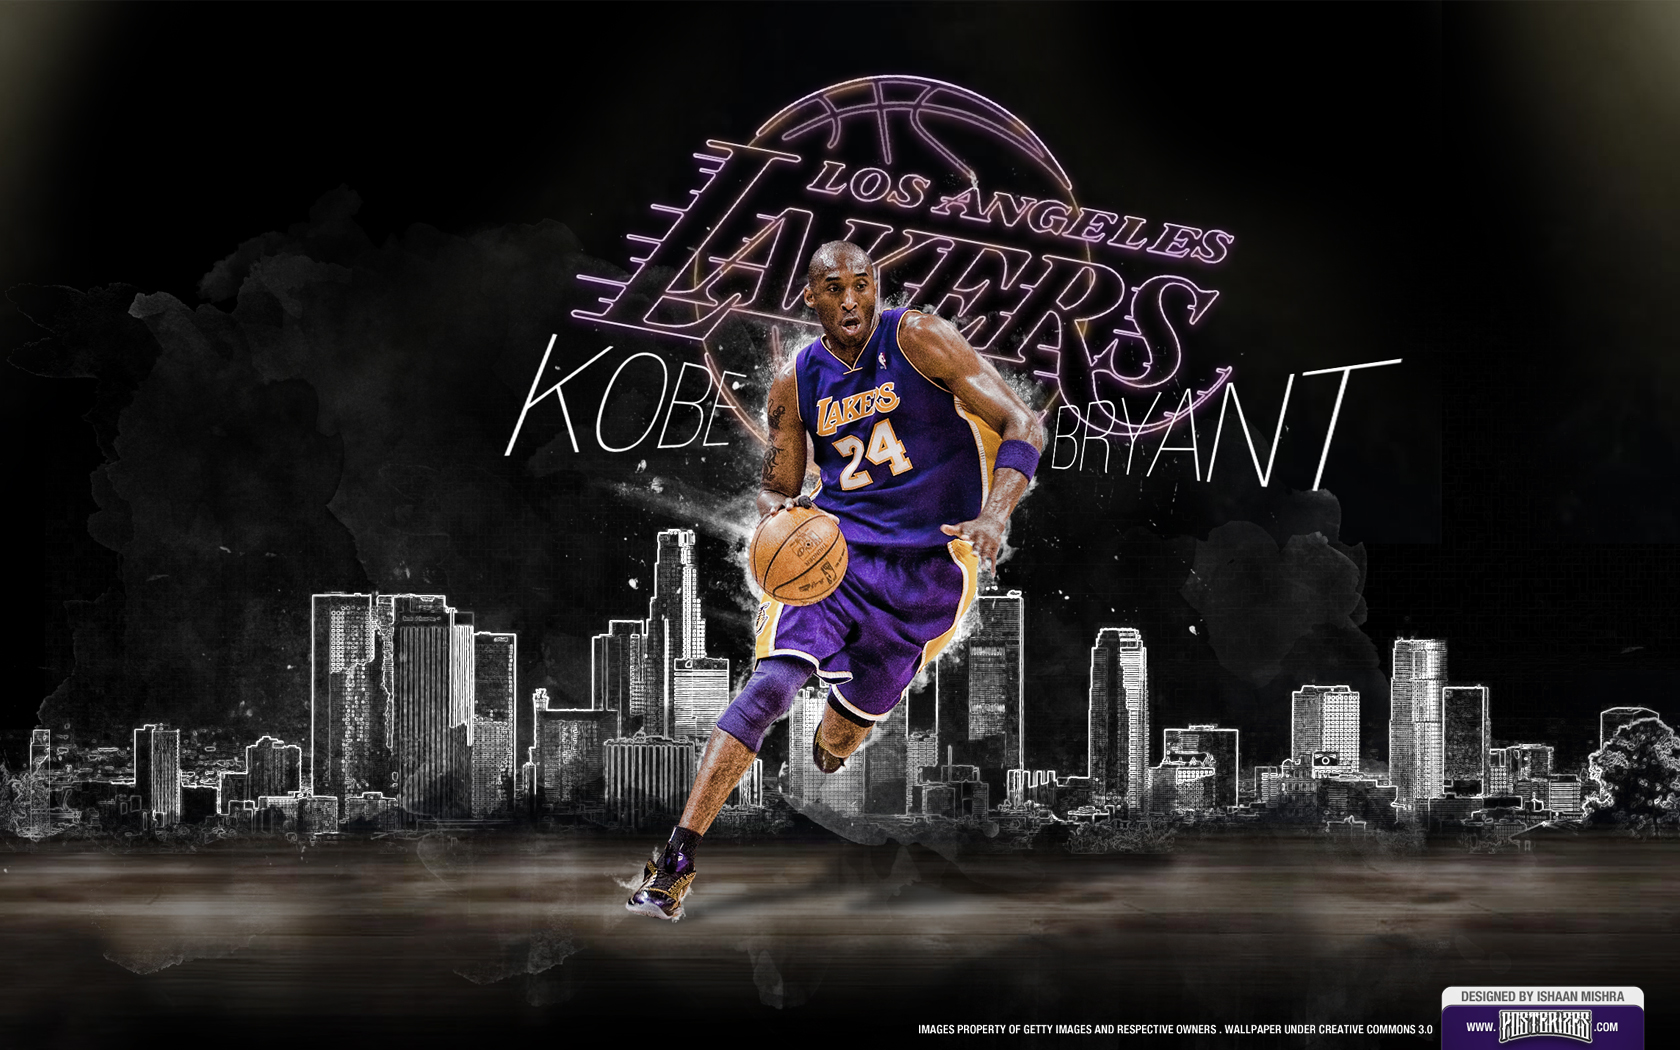 kobe bryant wallpaper 2016 - photo #36